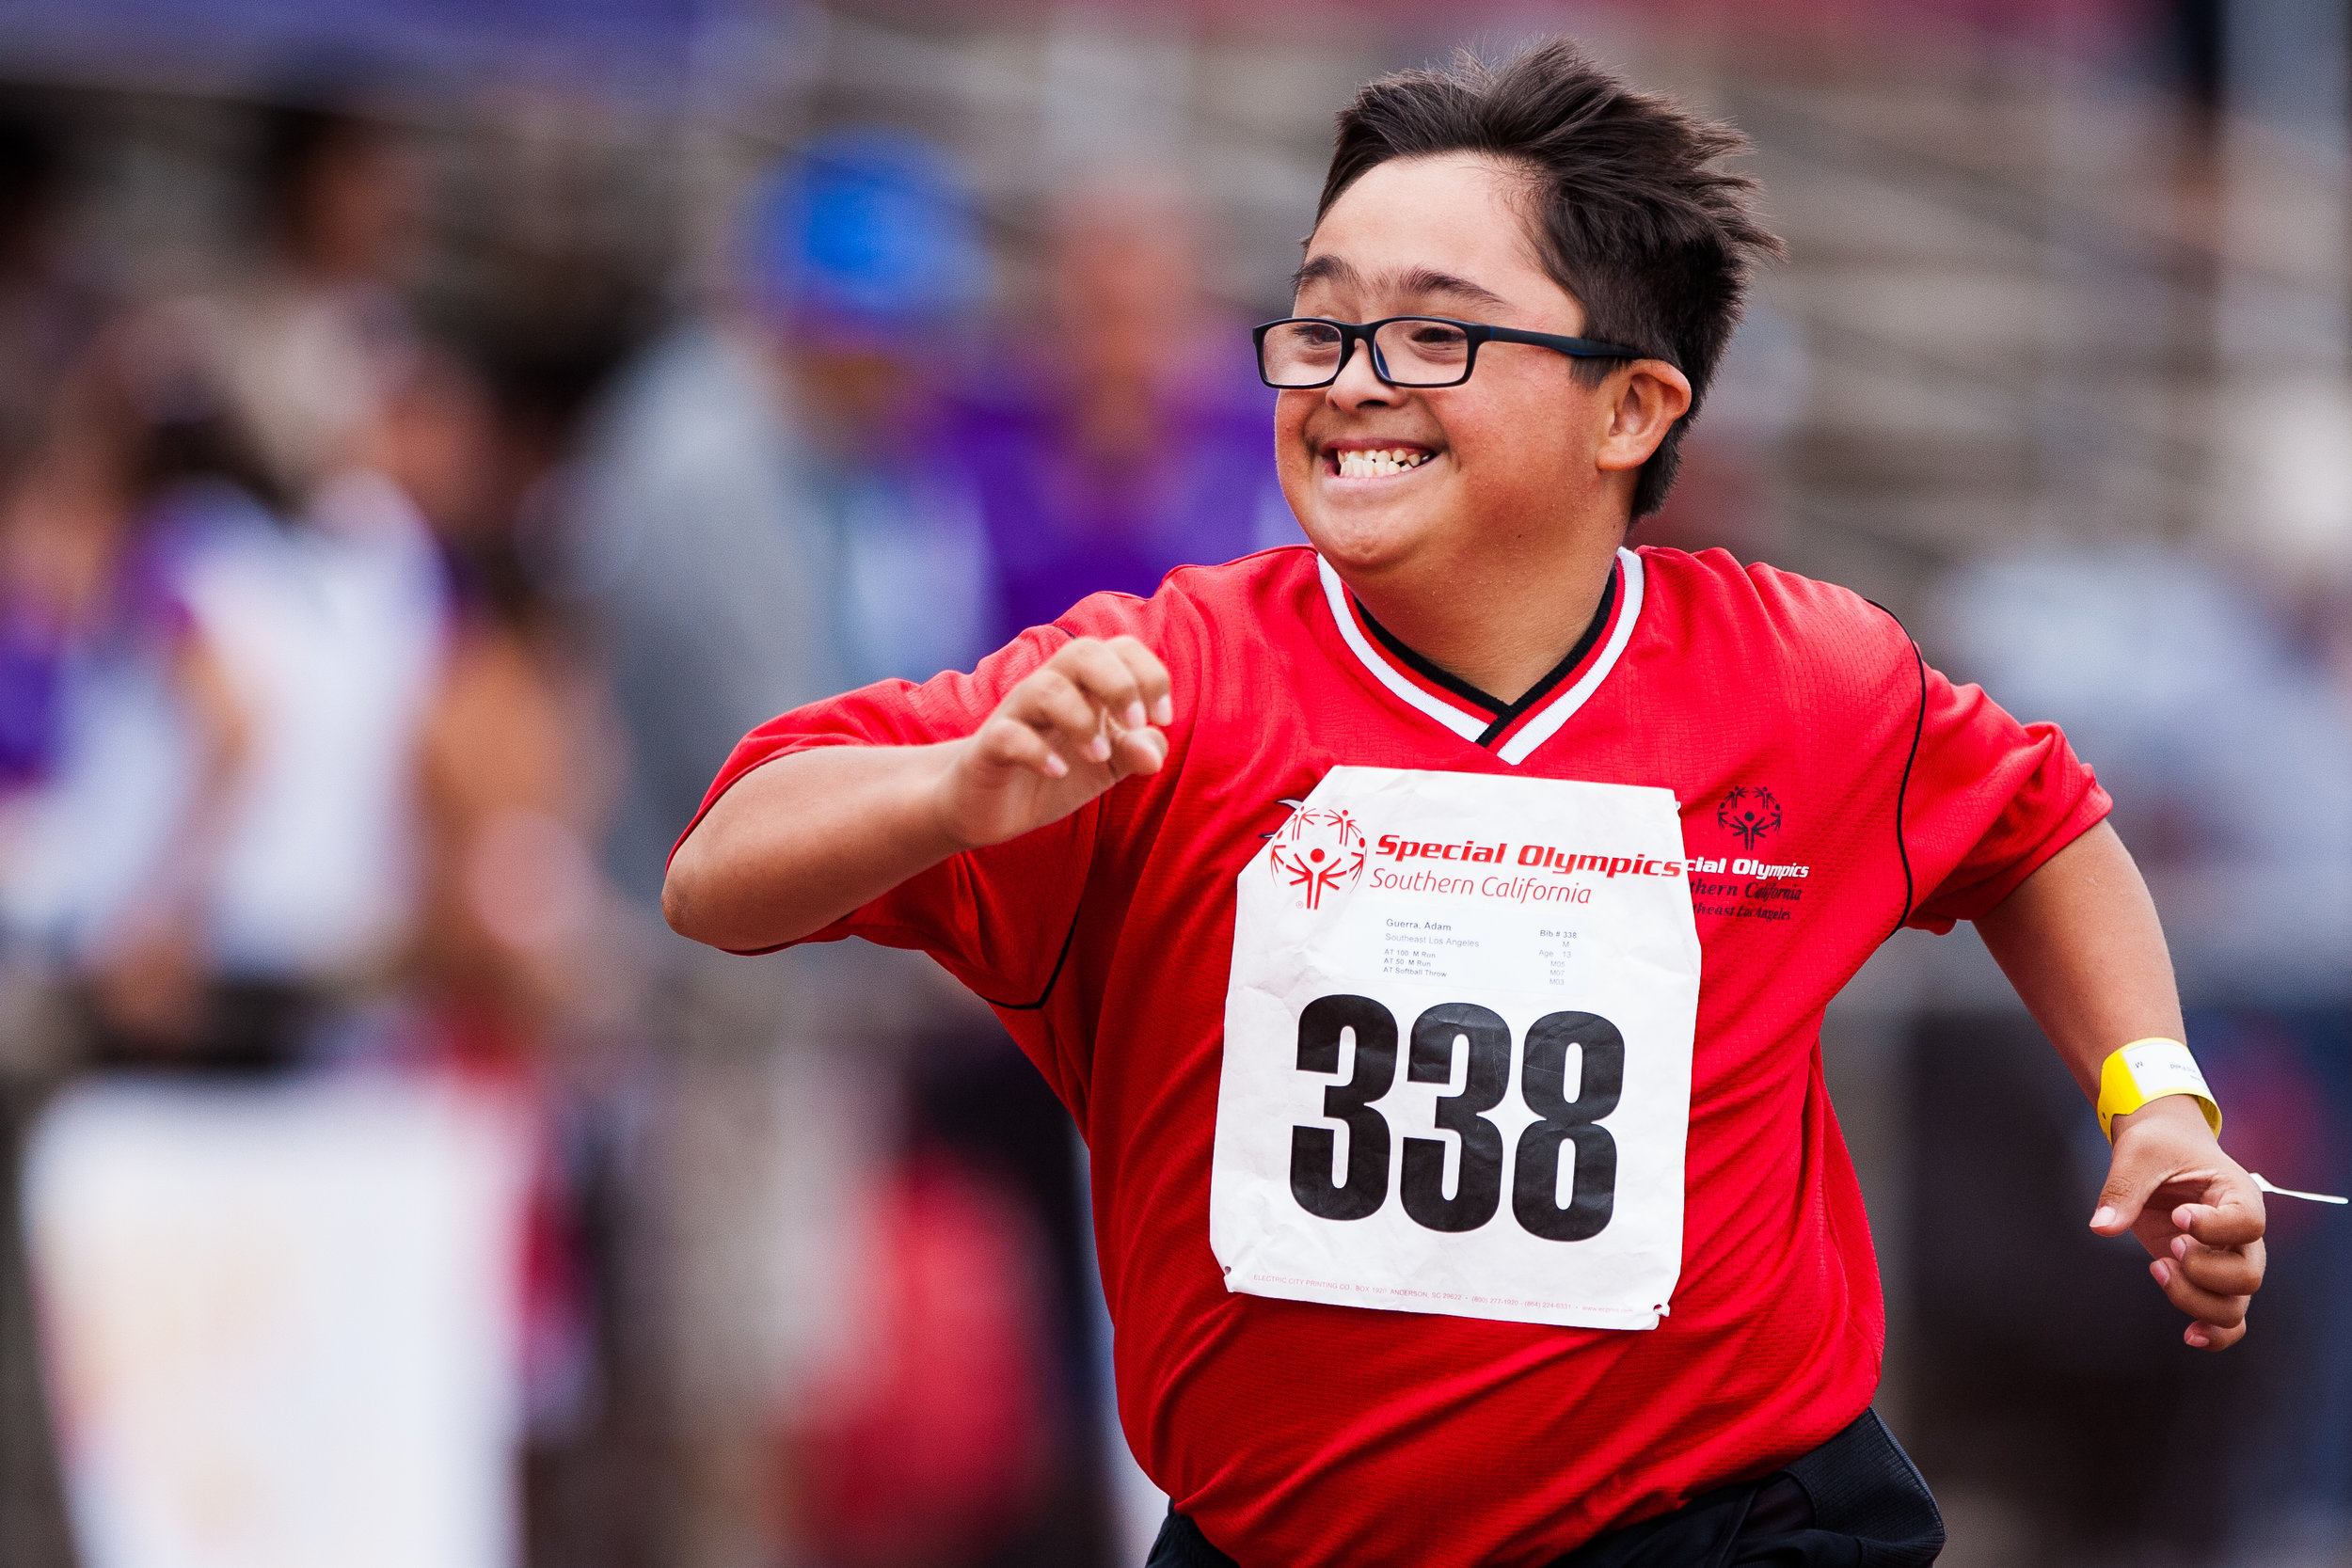 Jim Cayer Special Olympic Summer Games 2013 -828.jpg